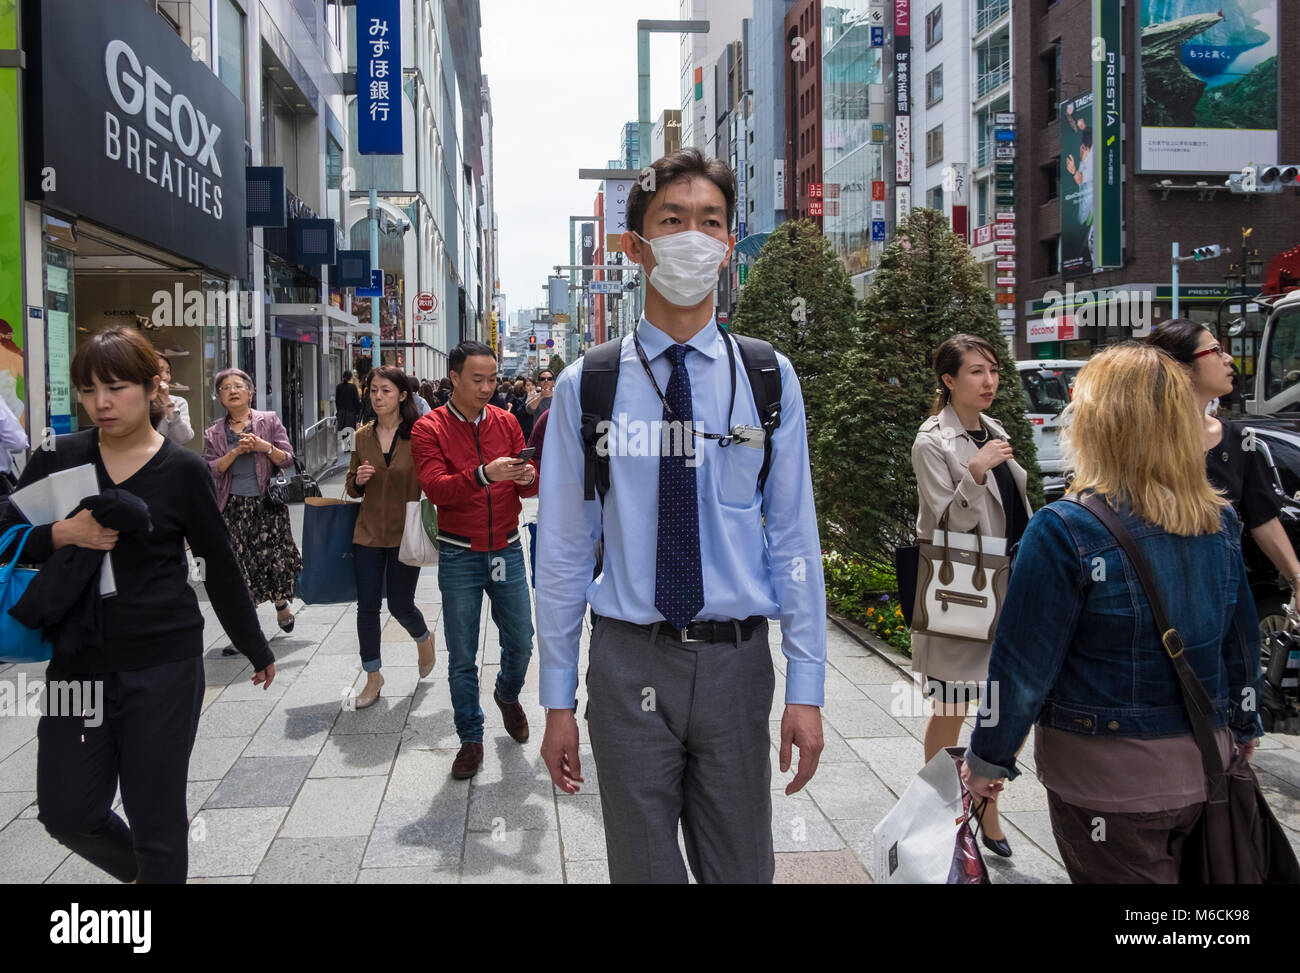 Street scene in Ginza district of Tokyo, Japan - Stock Image